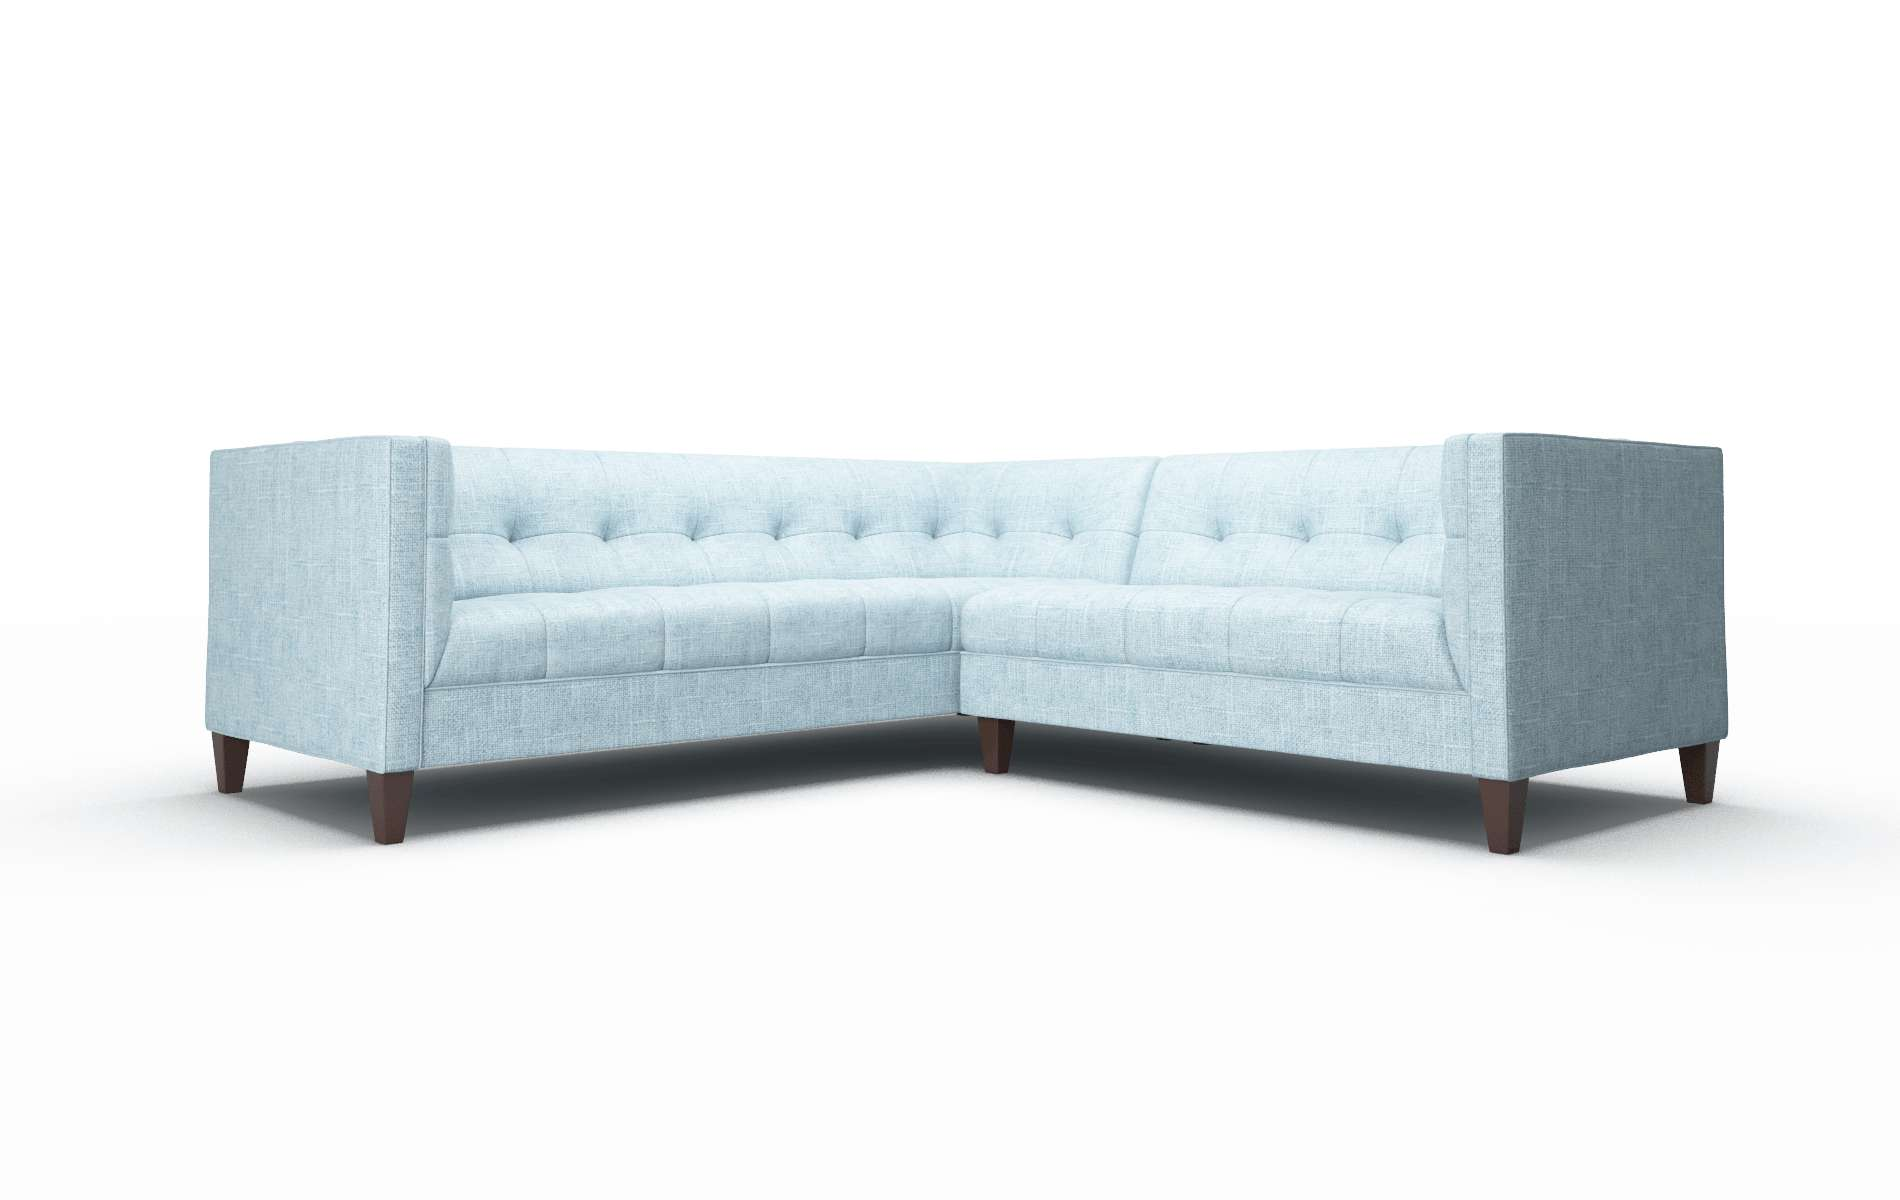 Messina Atlas Turquoise Sectional espresso legs 1